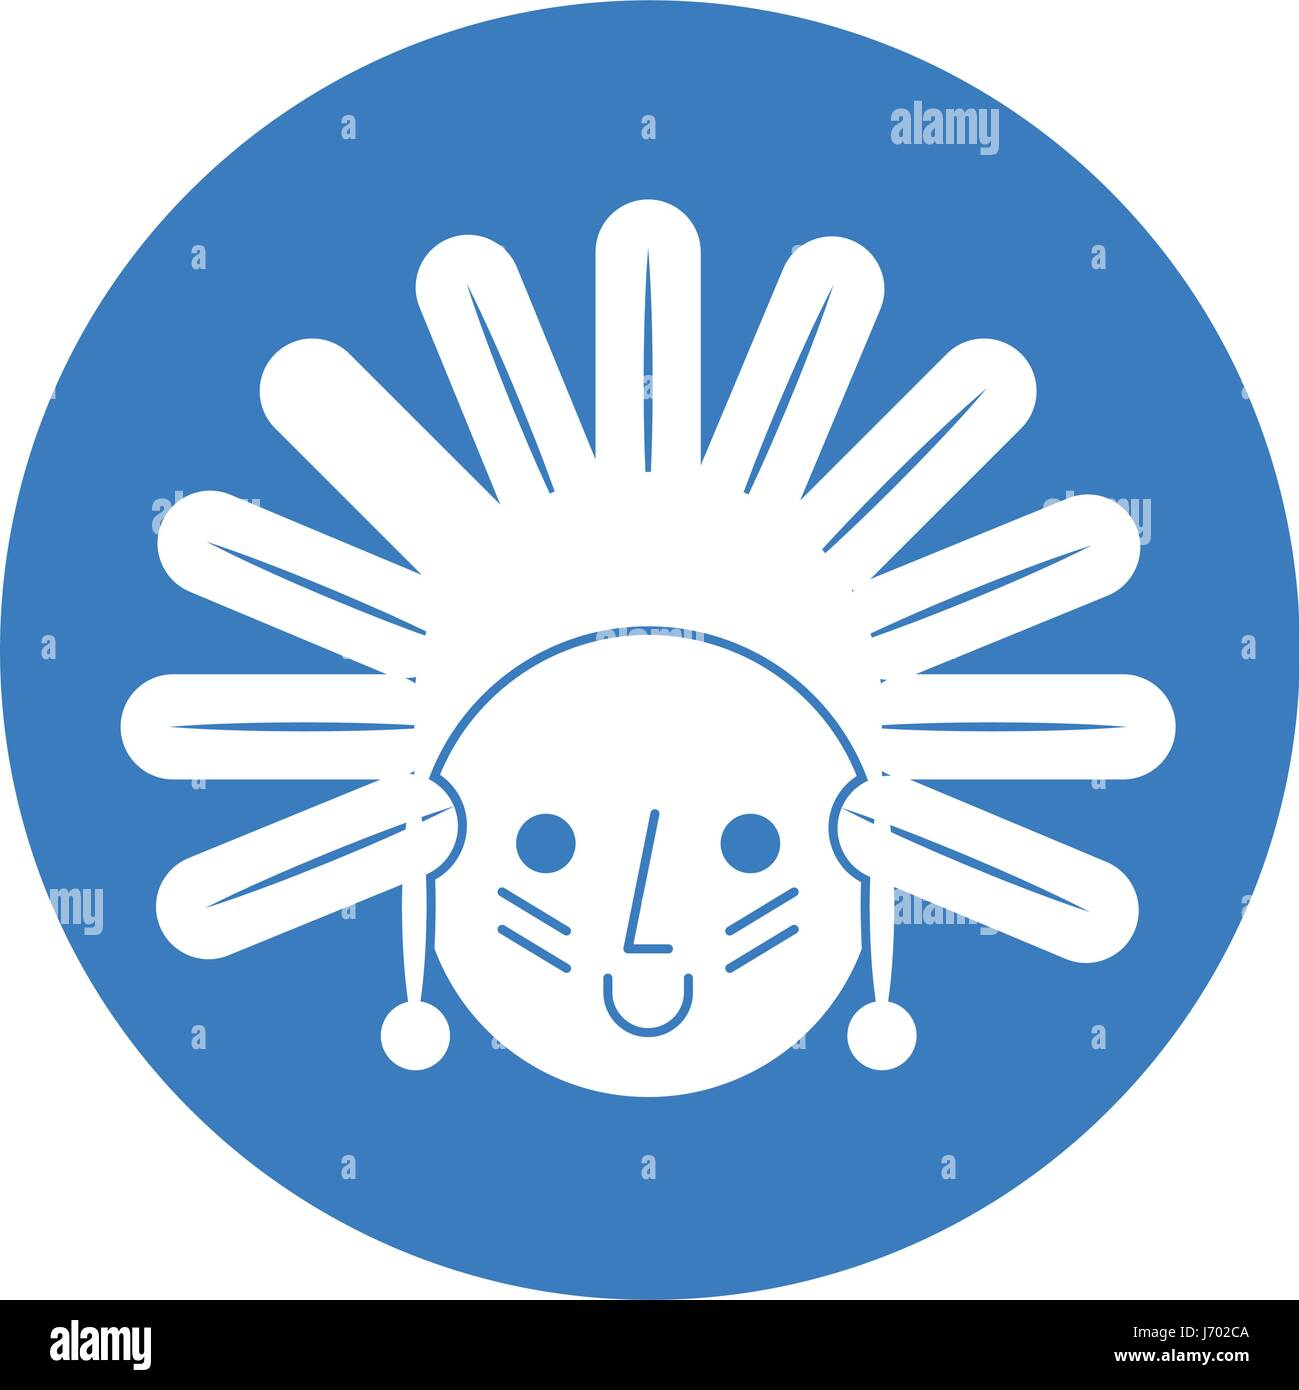 native American character icon - Stock Image